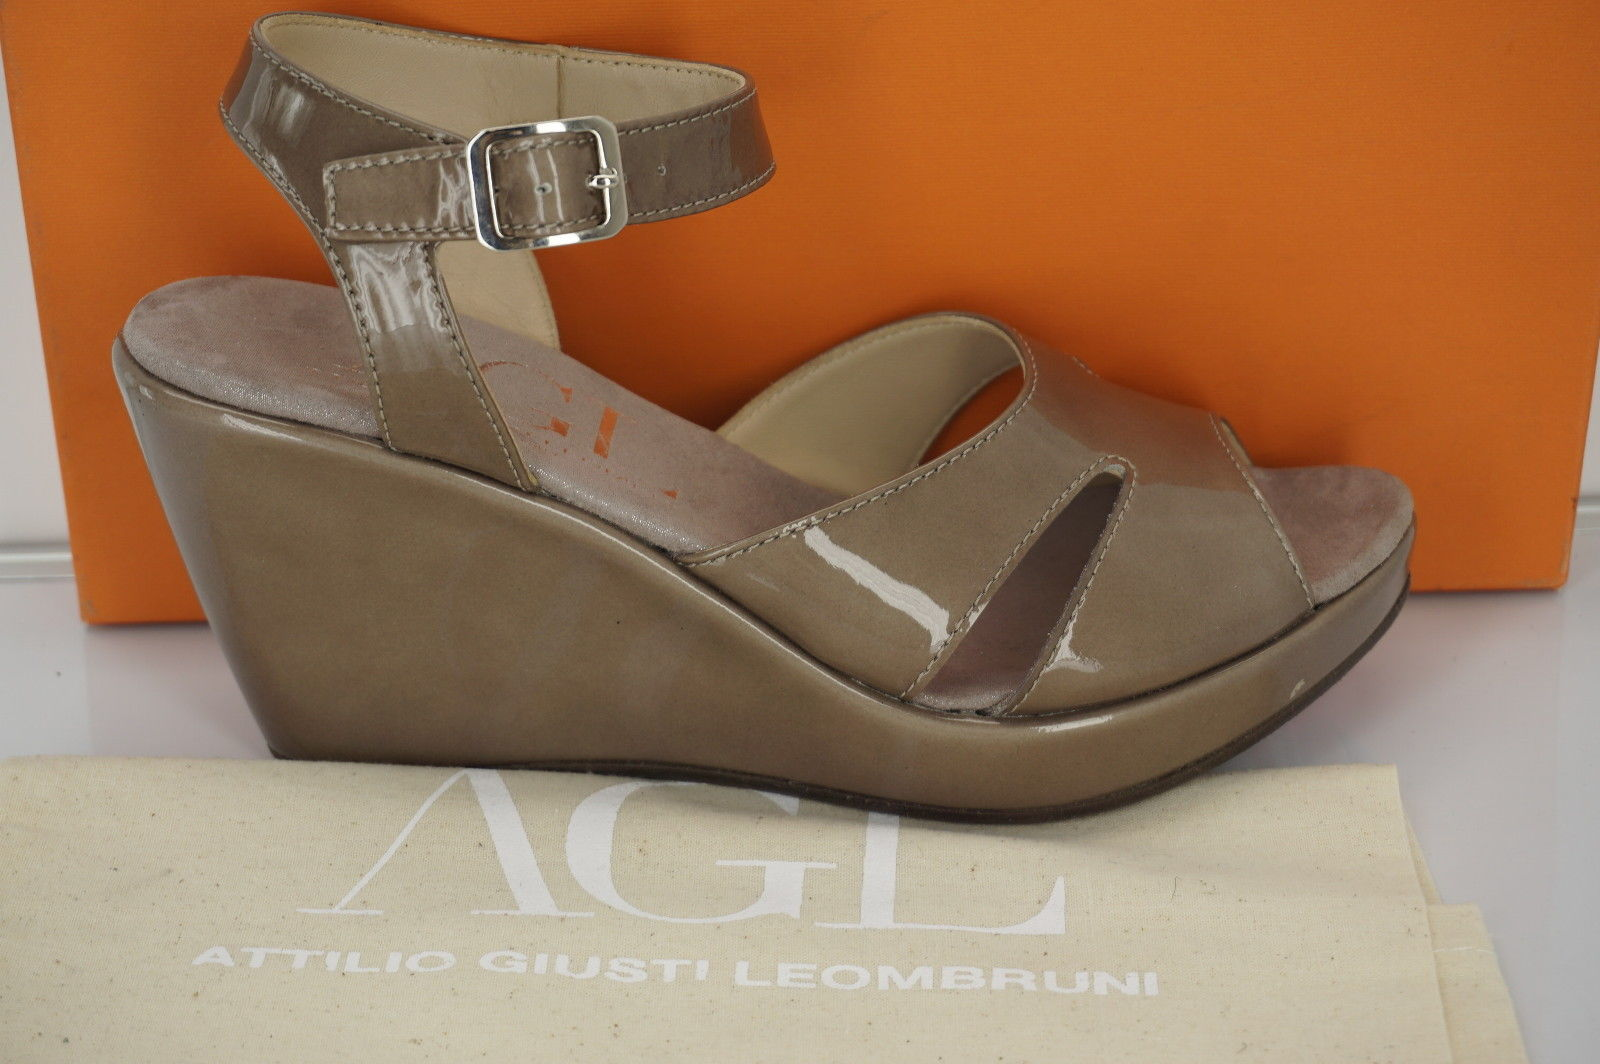 Attilio Giusti Leombruni Womens Wedge Wedge Sandal Beige Leather Size 39